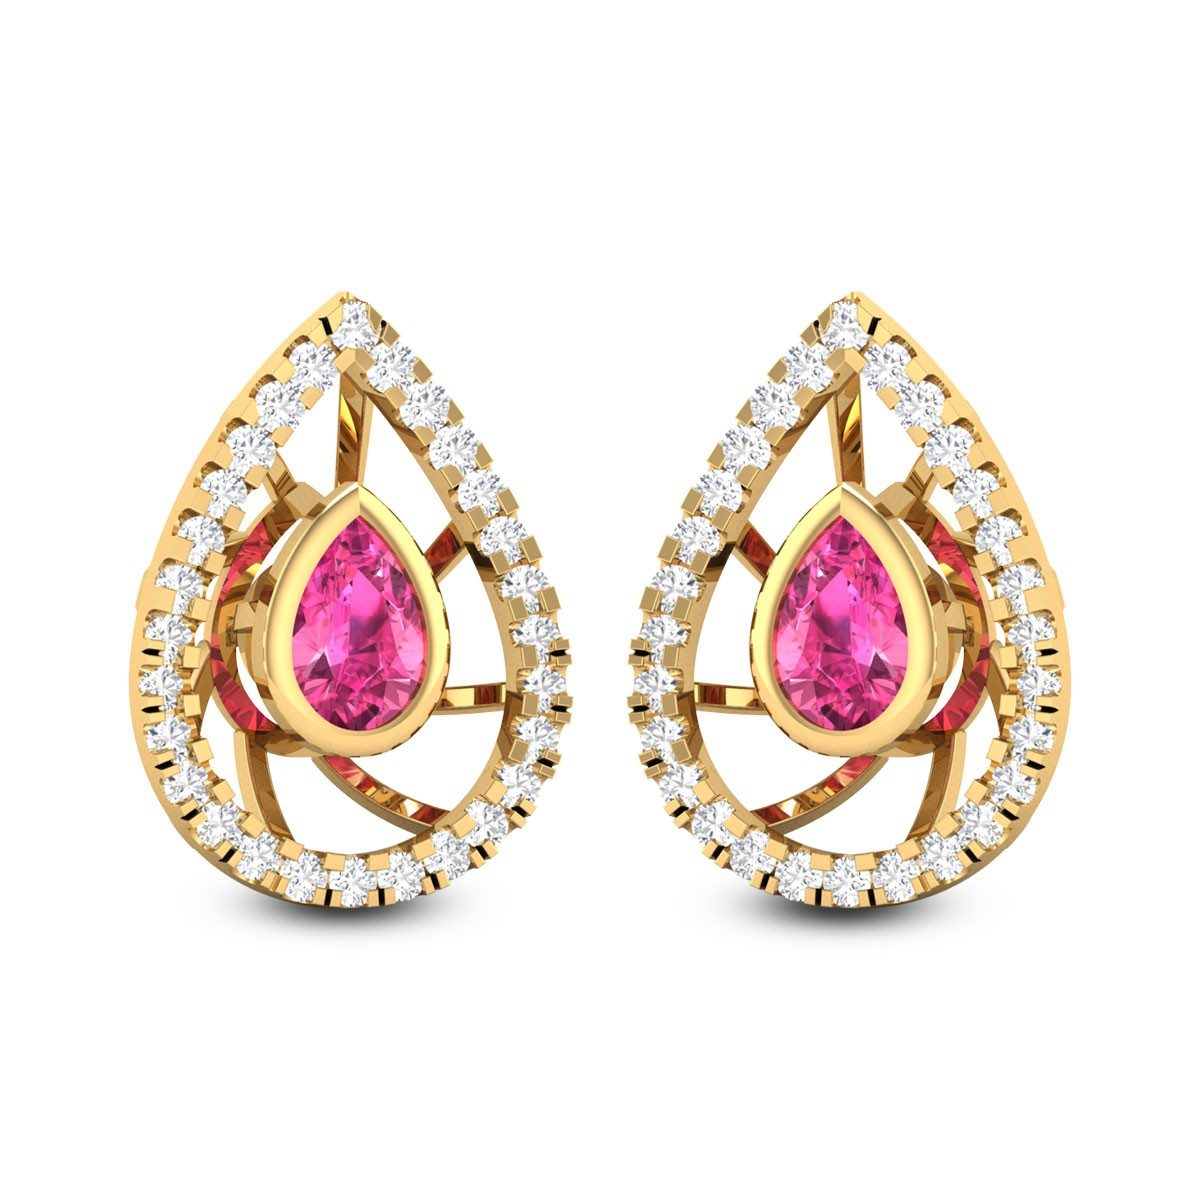 Jarred Diamond Earrings